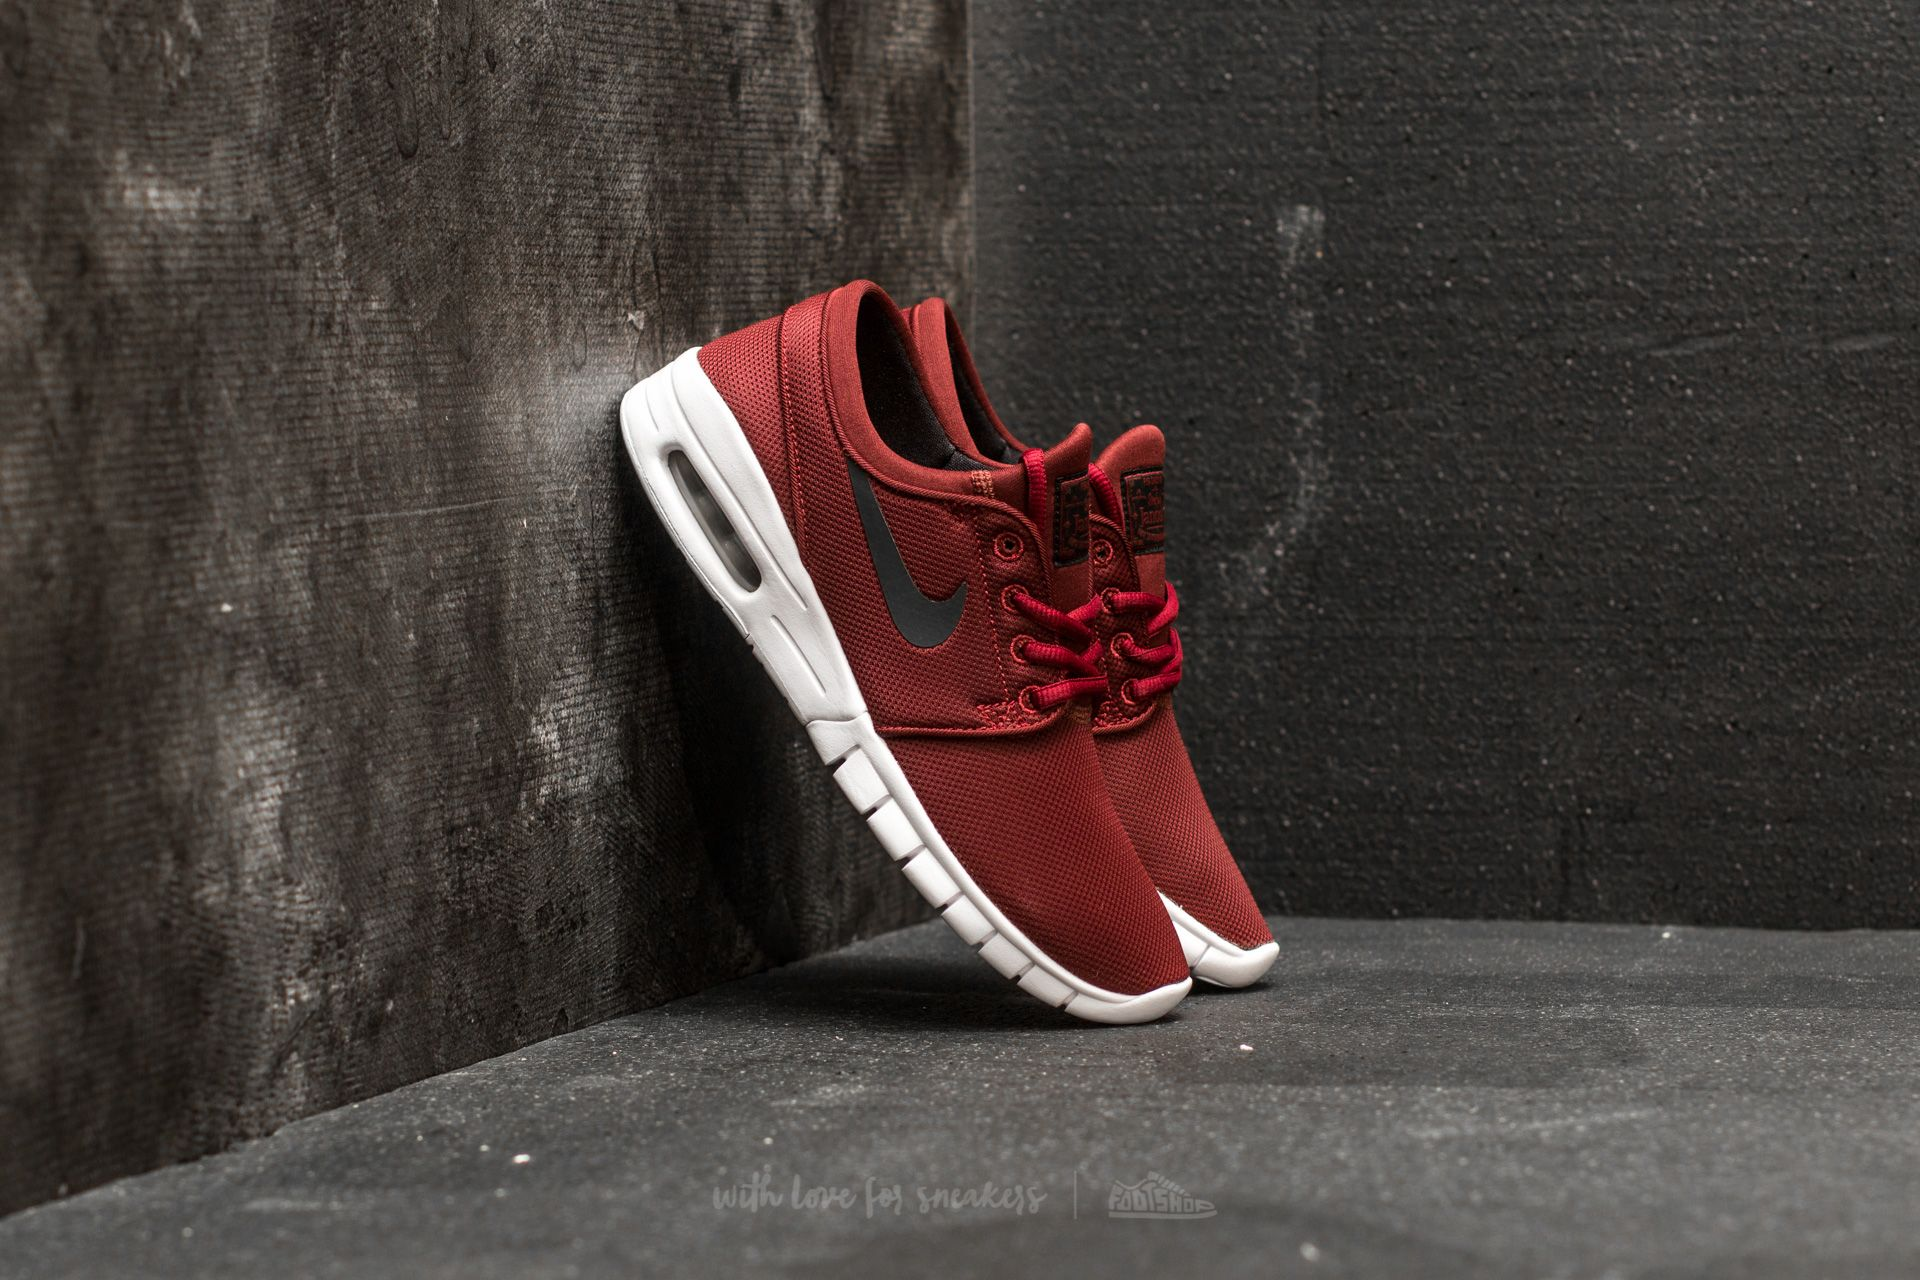 best sale outlet store new style Nike Stefan Janoski Max (GS) Dark Team Red/ Black-White ...